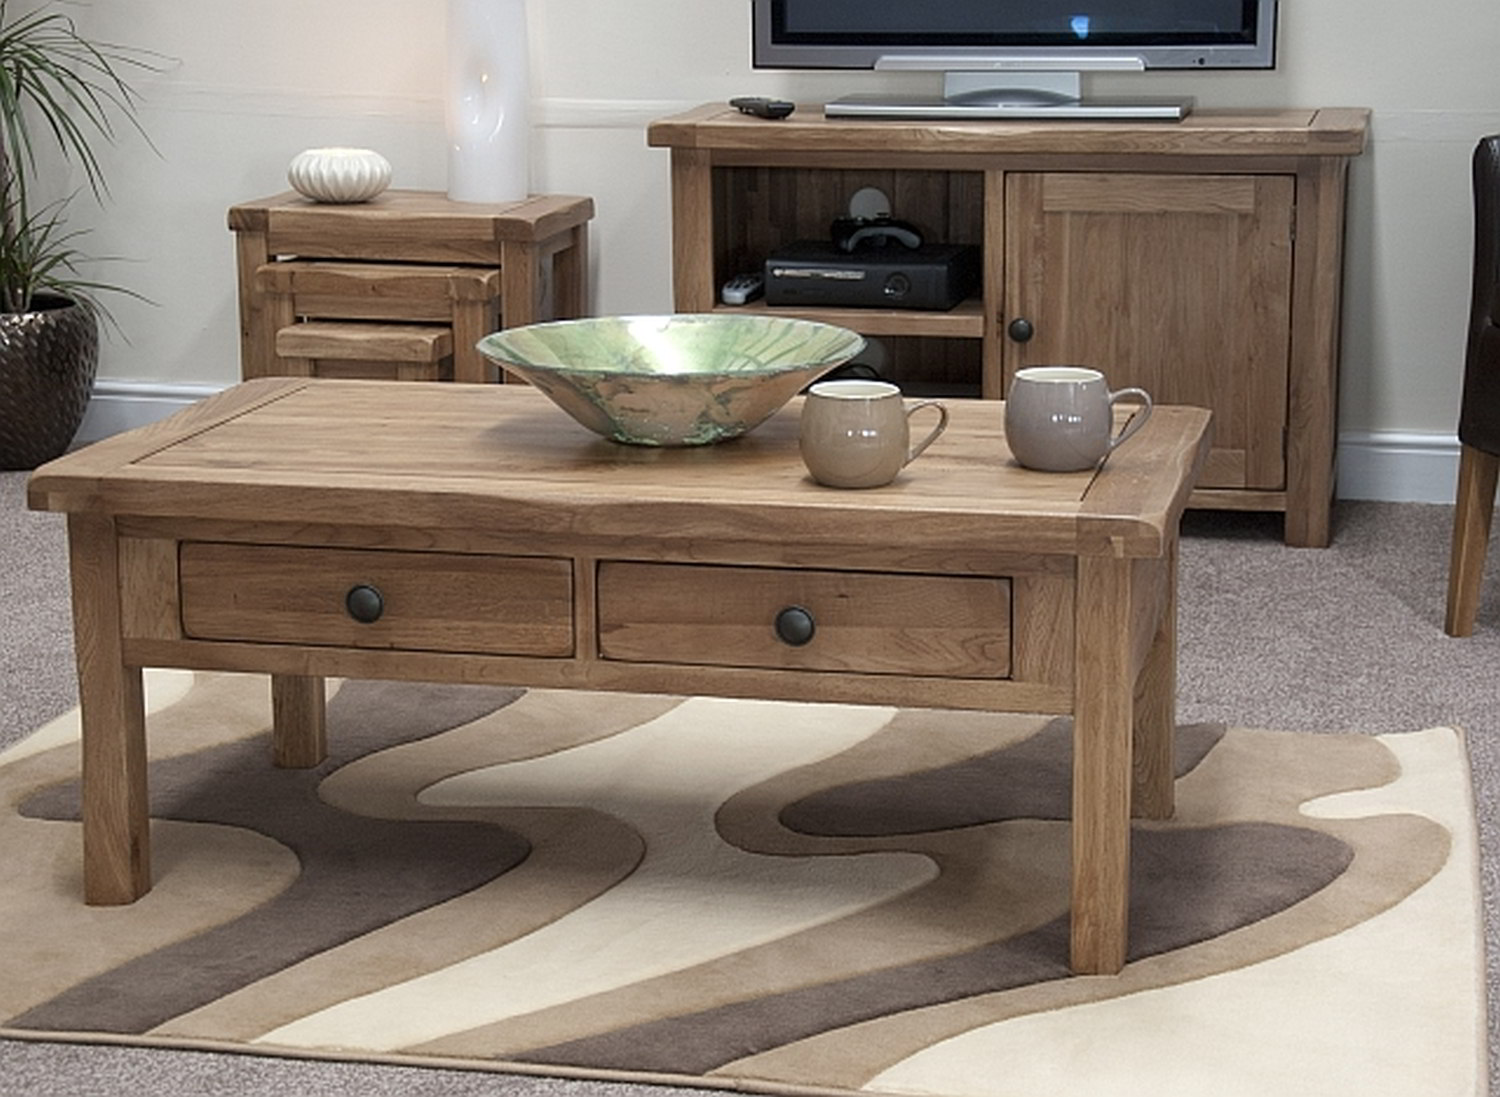 Cool High End Coffee Tables - HomesFeed